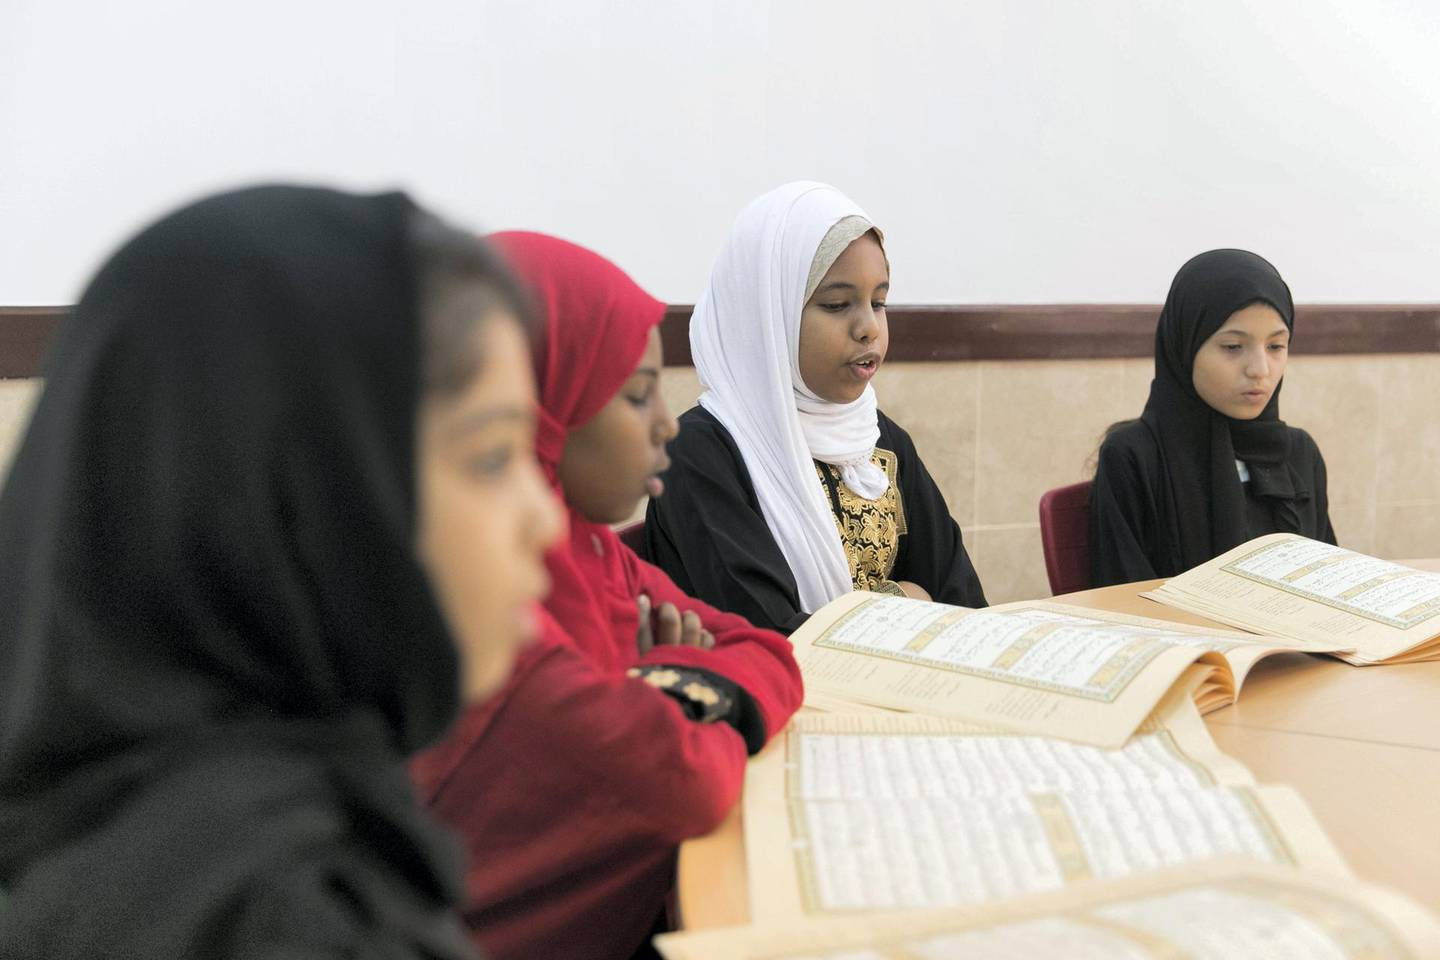 ABU DHABI, UNITED ARAB EMIRATES - AUGUST 8, 2018. Summer Quran class at Al Bateen Centre For Quran Memorization.(Photo by Reem Mohammed/The National)Reporter: Haneen DajaniSection:  NA